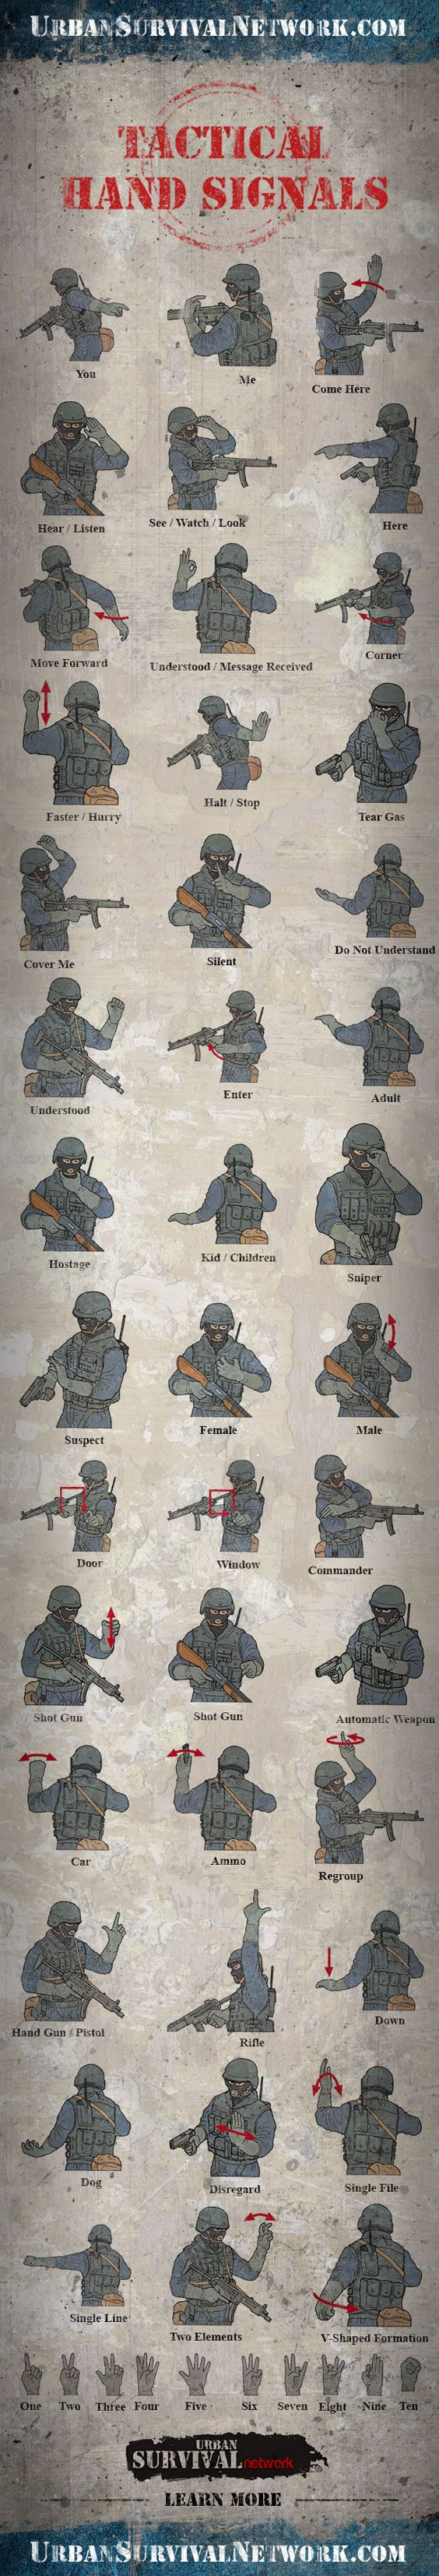 Tactical Hand Signals - preparation for the Zombie appocalypse